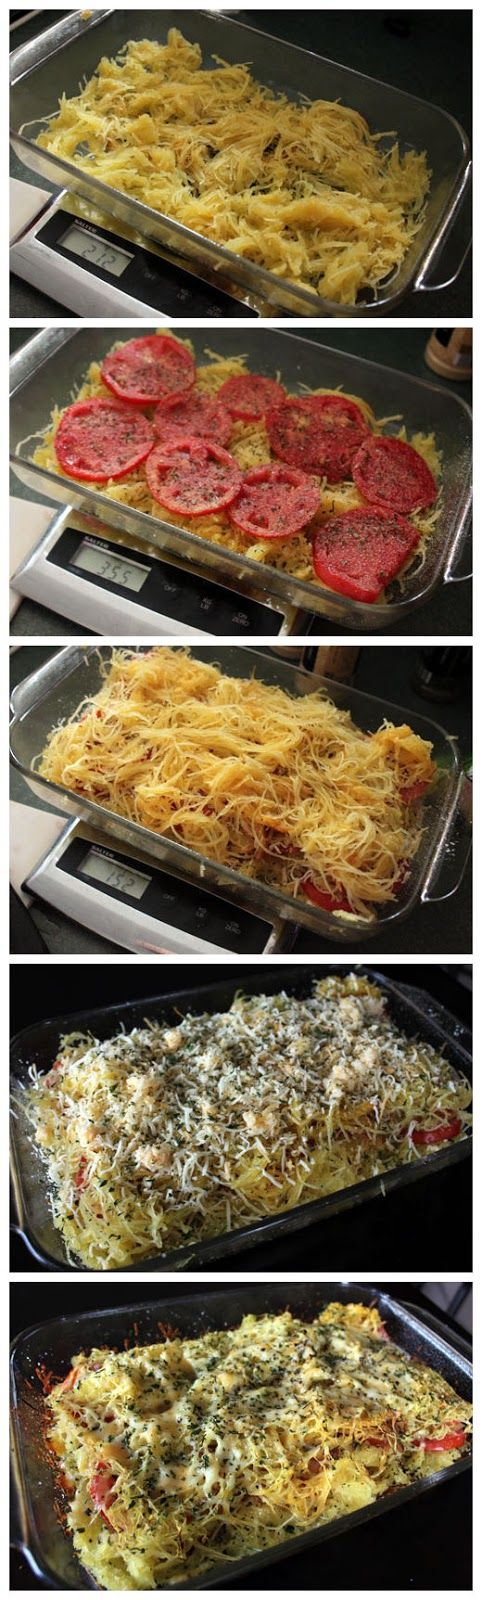 kiss recipe: Spaghetti Squash and Tomato Bake